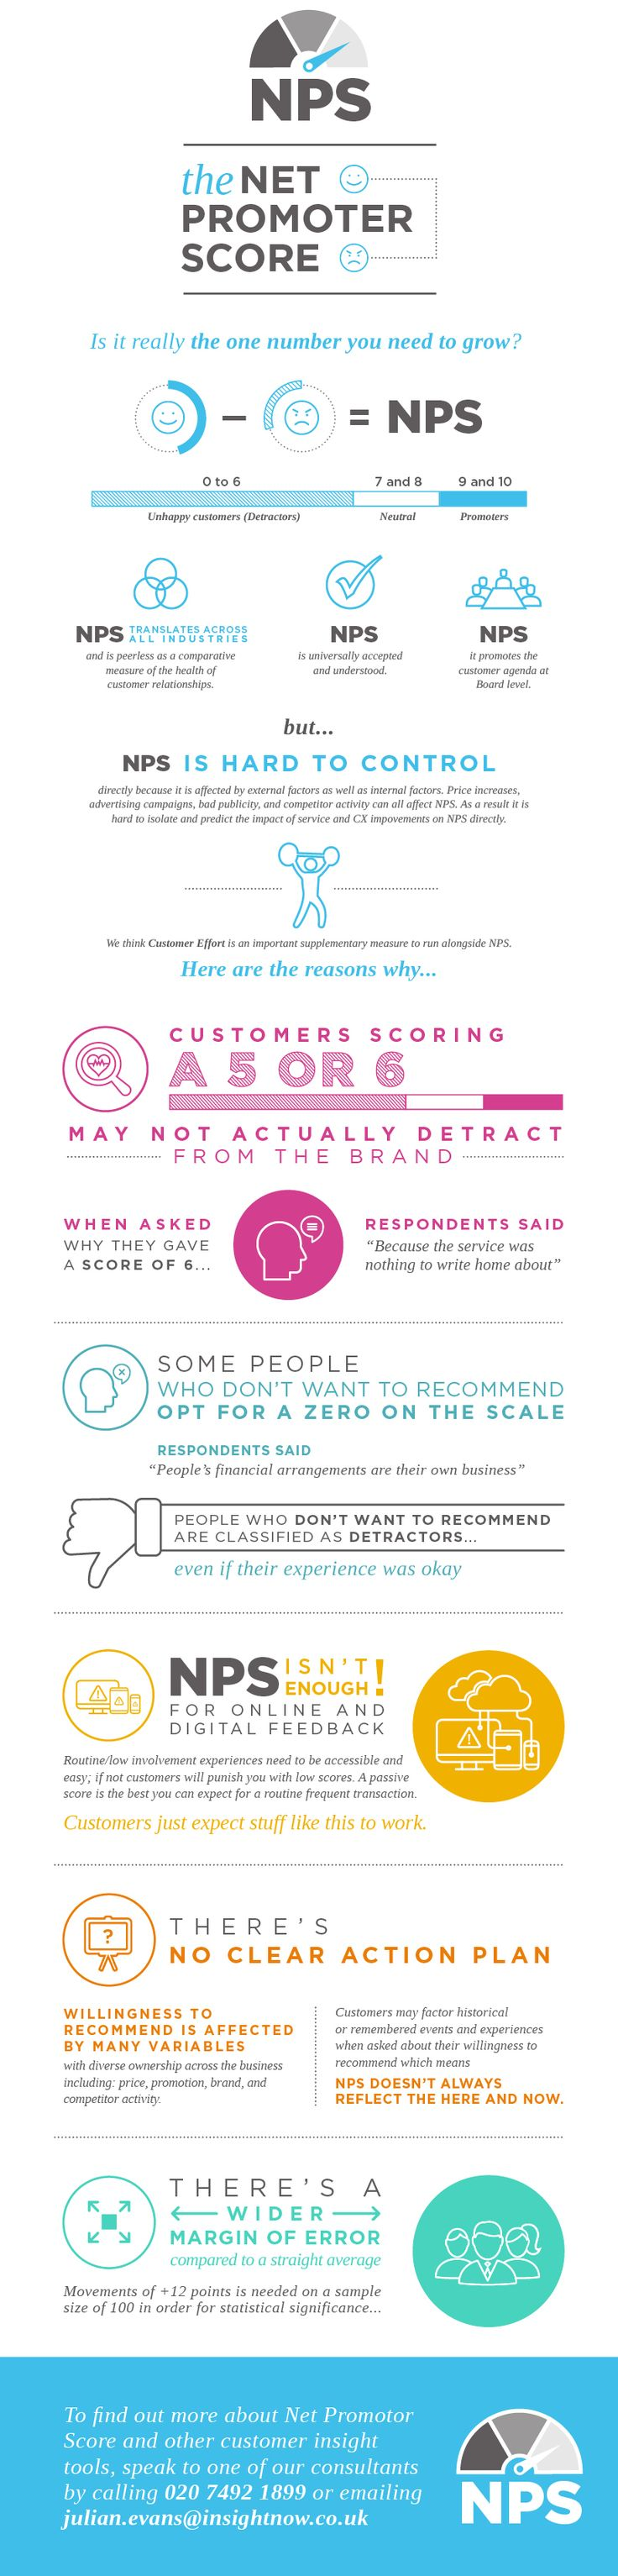 Information Design, Cover Graphics & Infographics by VCG Catapult for Insight Now - The Net Promoter Score